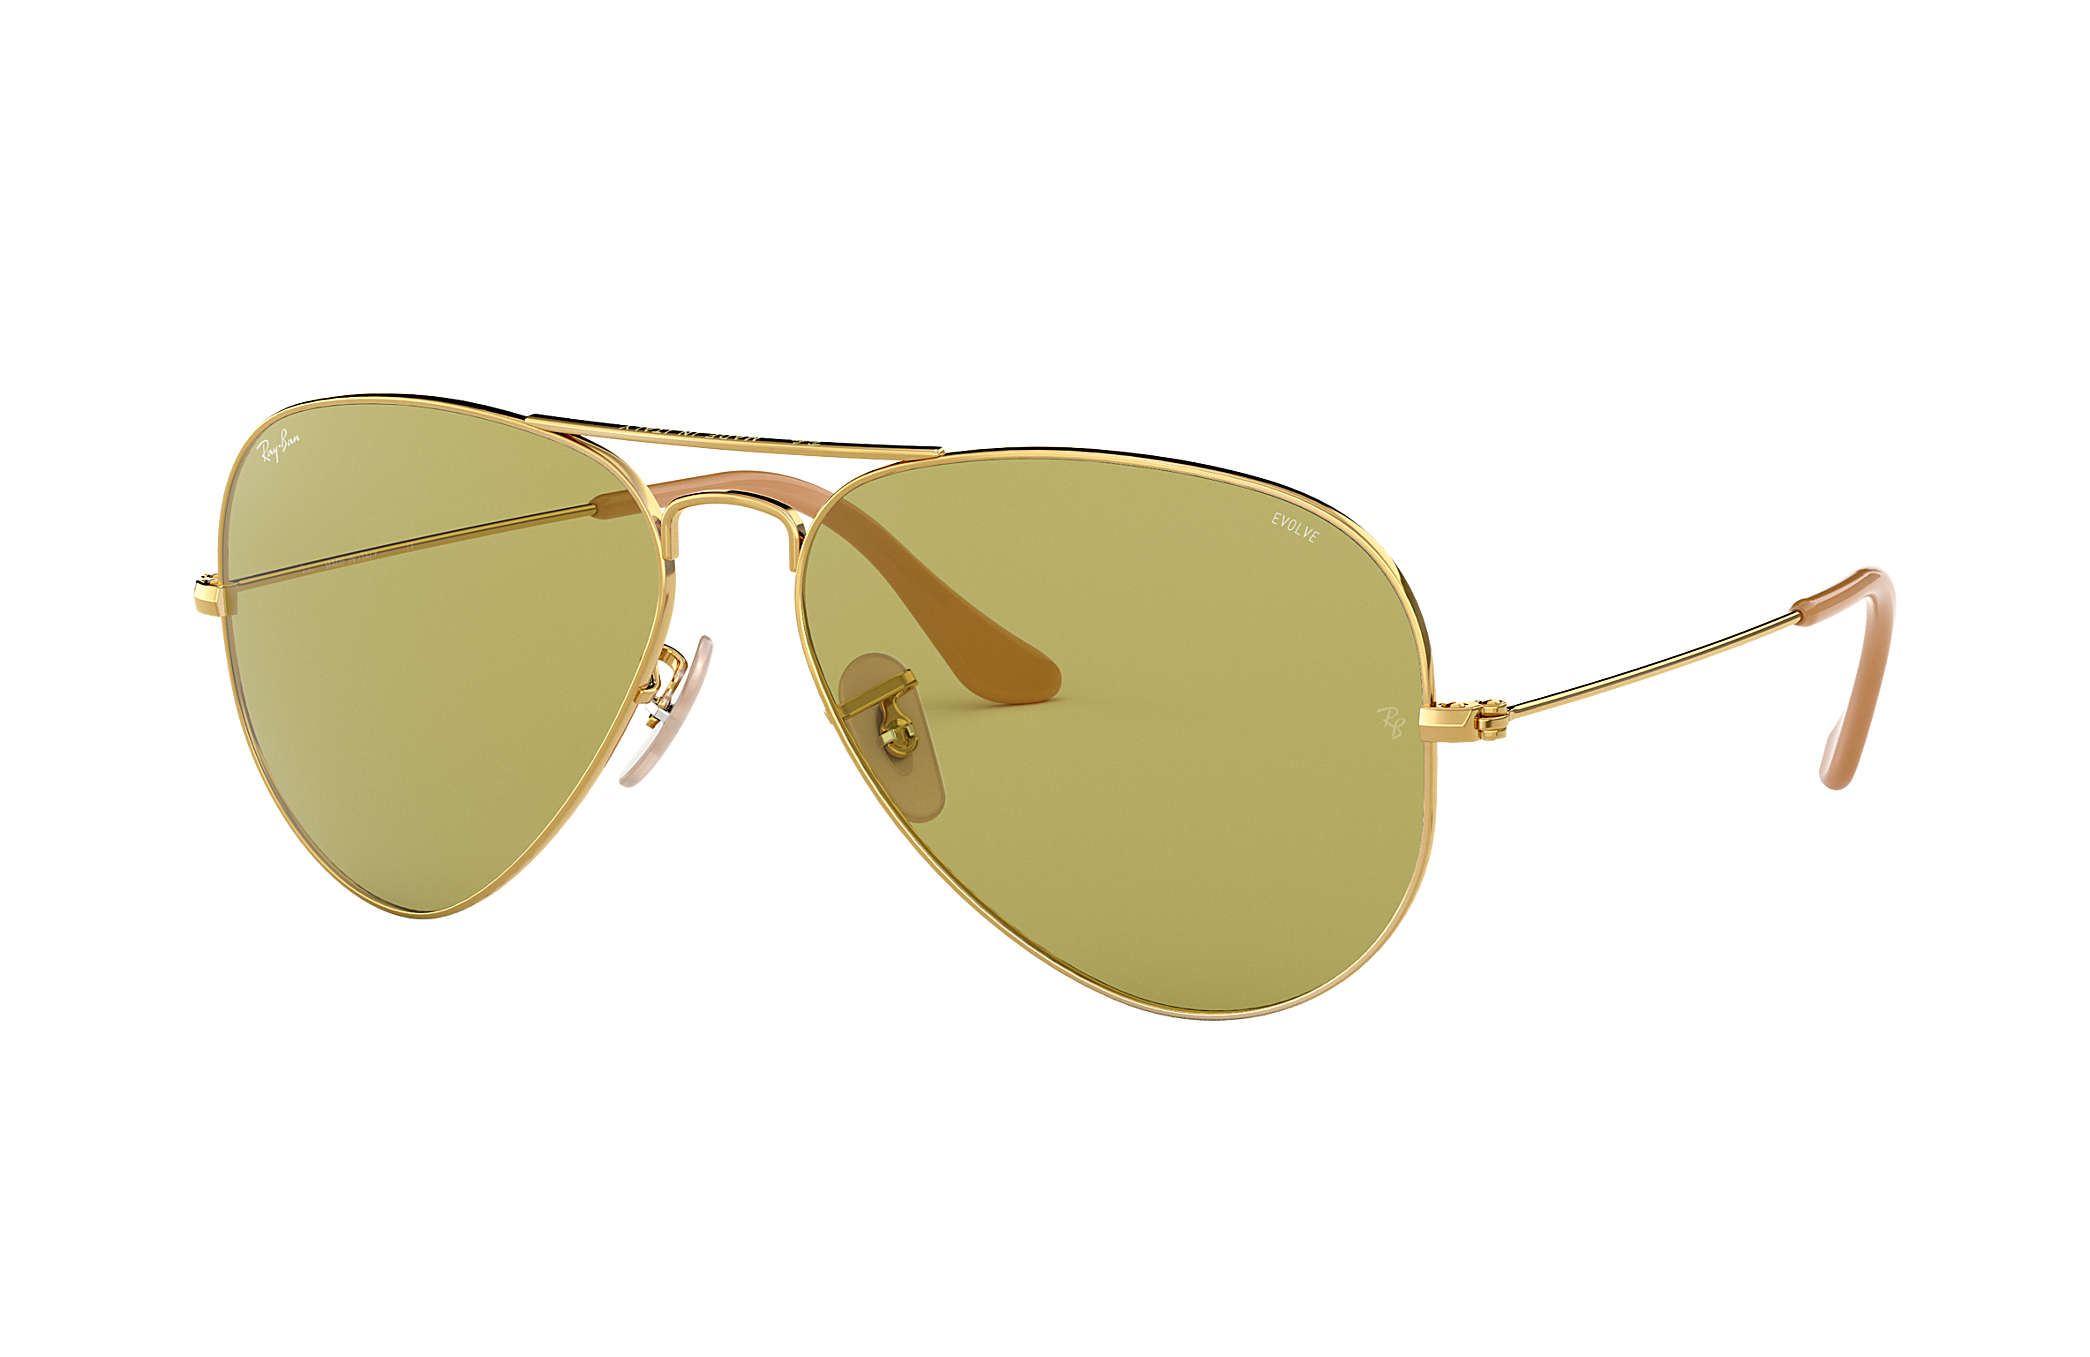 52613a360696f Ray-Ban Aviator Evolve RB3025 Gold - Metal - Green Lenses ...